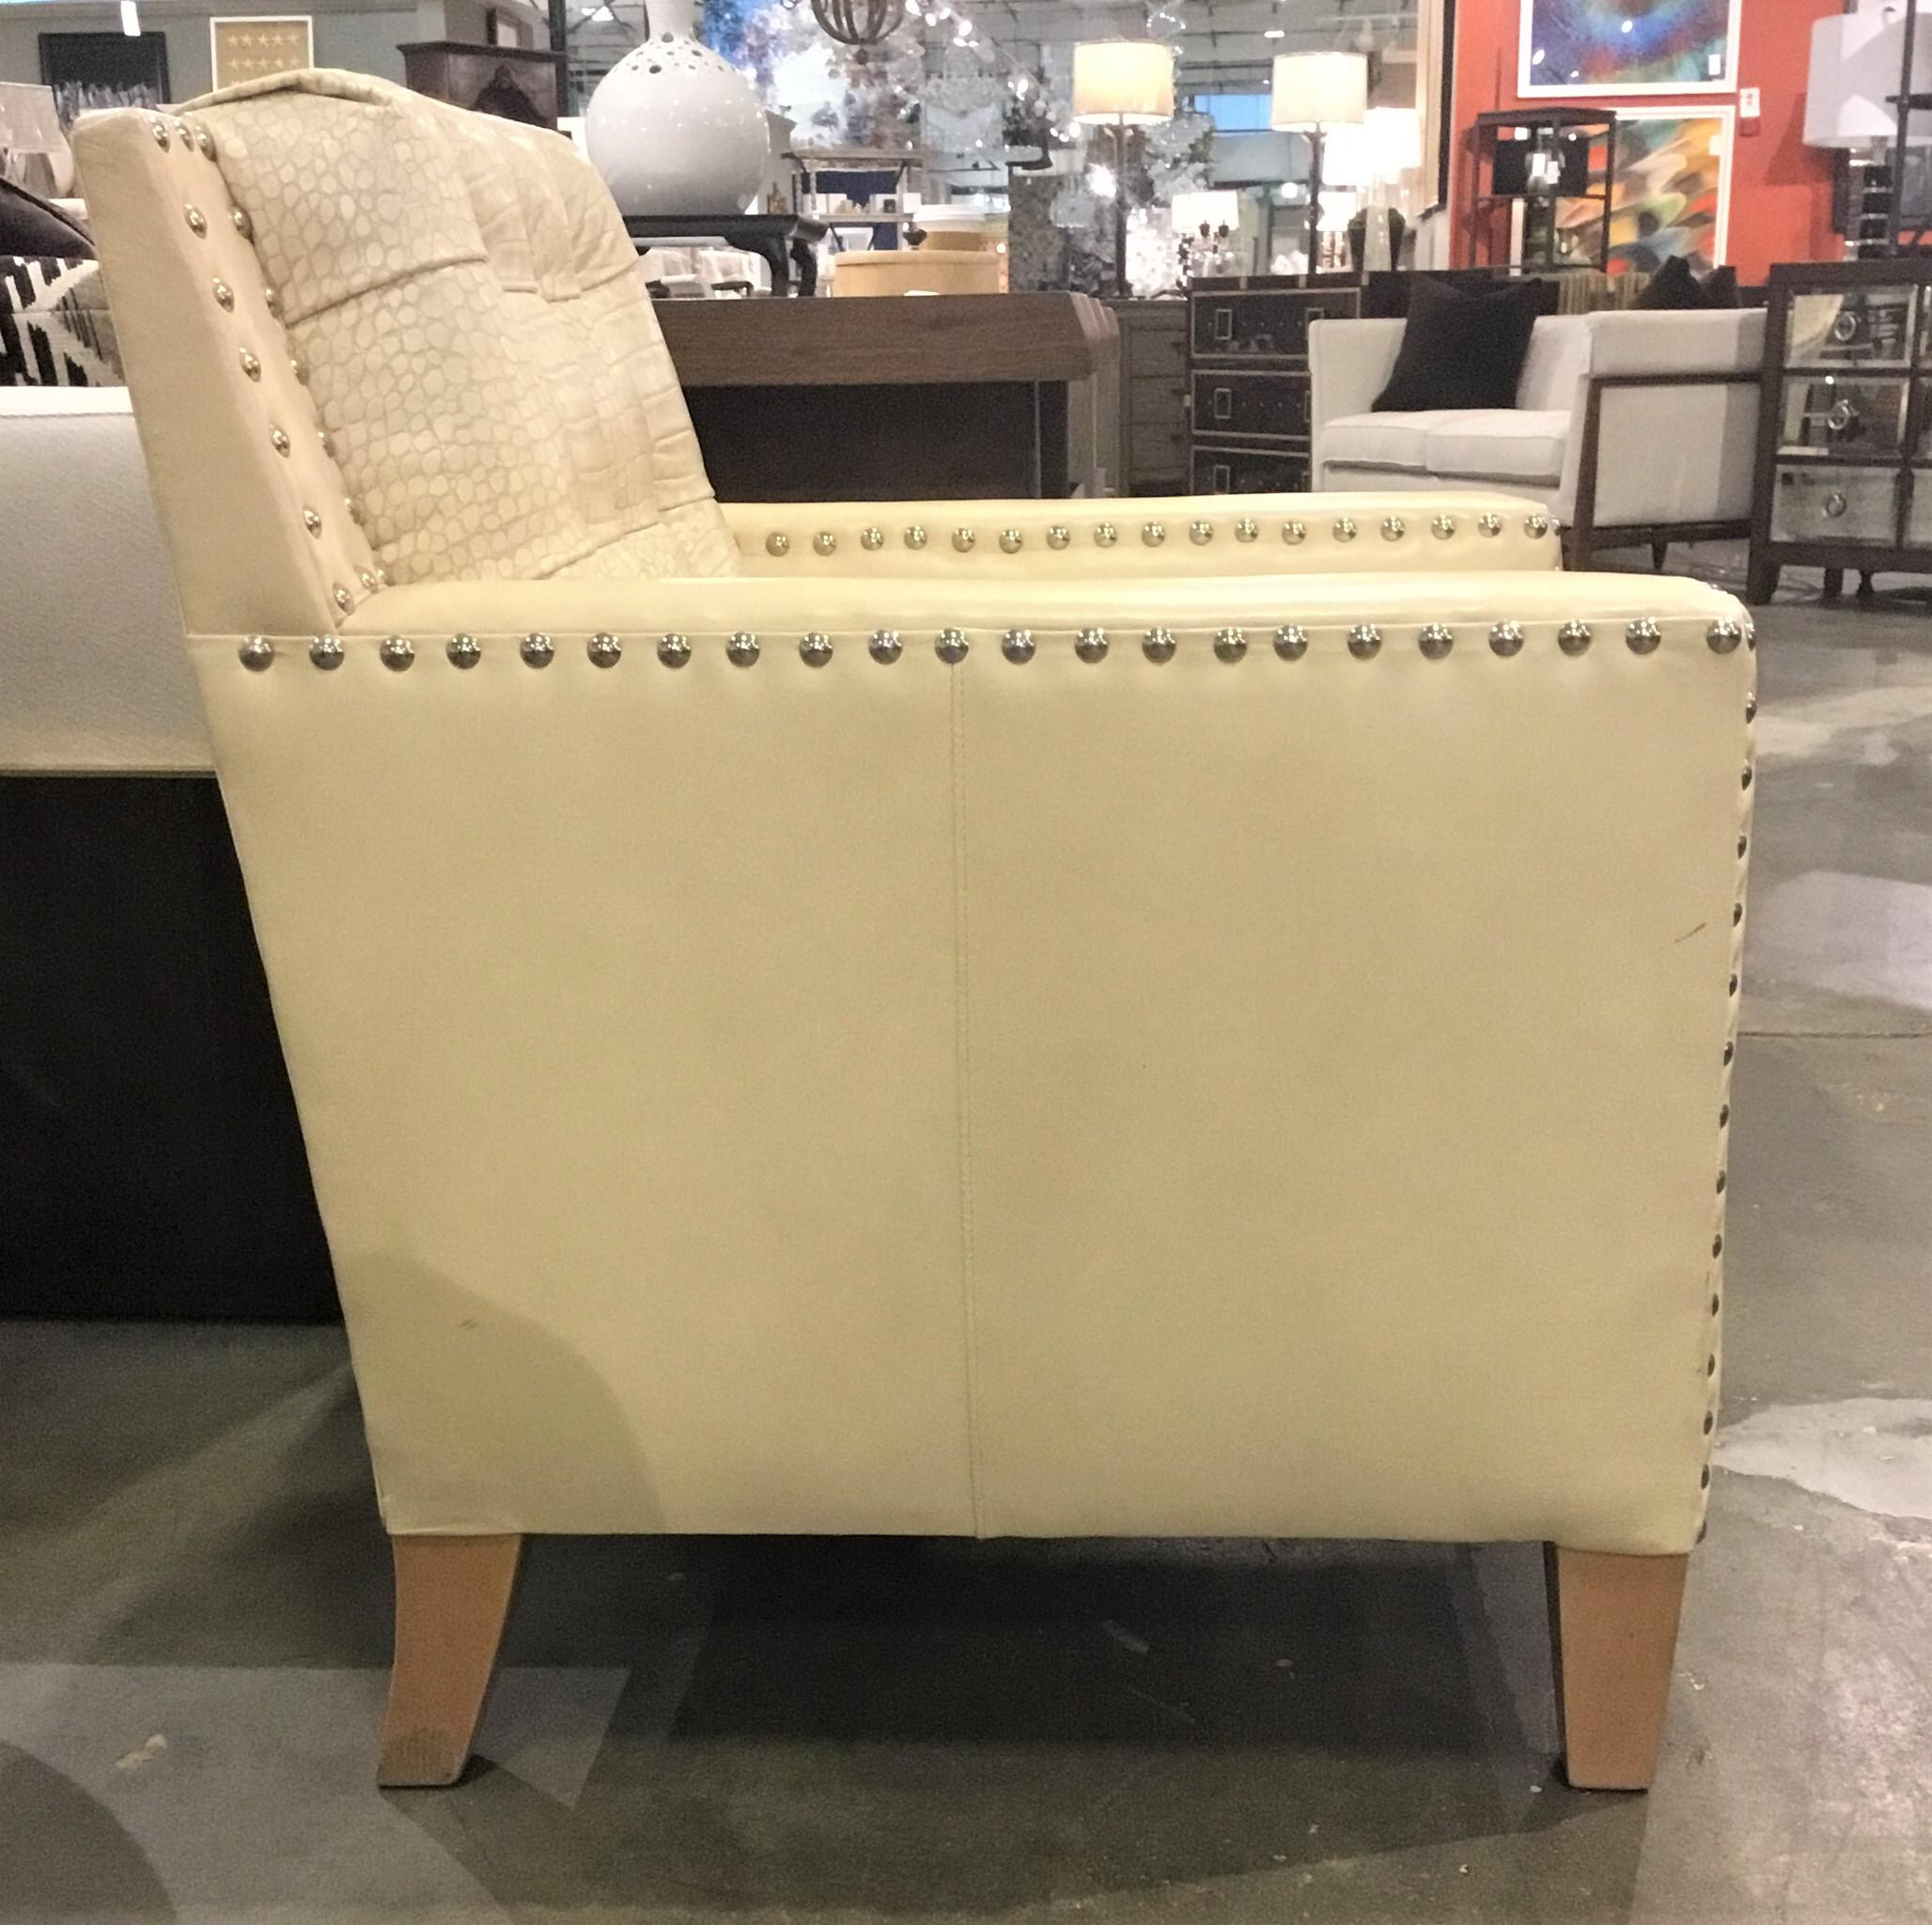 Stylish Modern Leather Craft Co. Embossed Alligator Print Leather Club Chair  In A Rich Cream